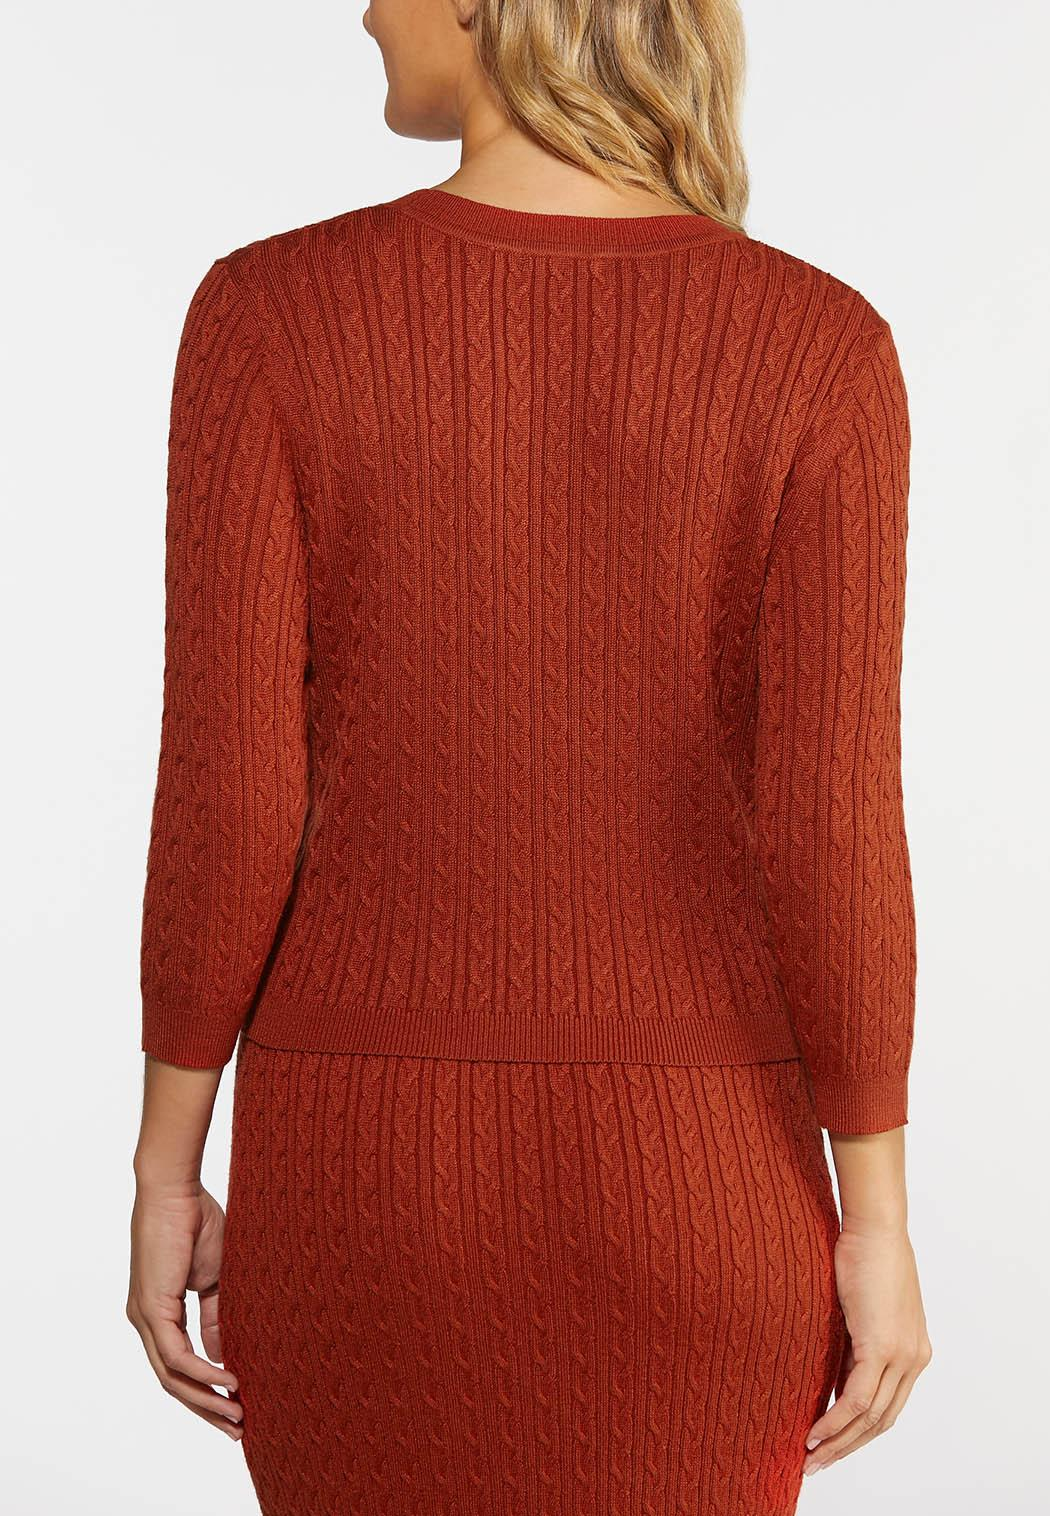 Orange Cable Knit Sweater (Item #44347946)